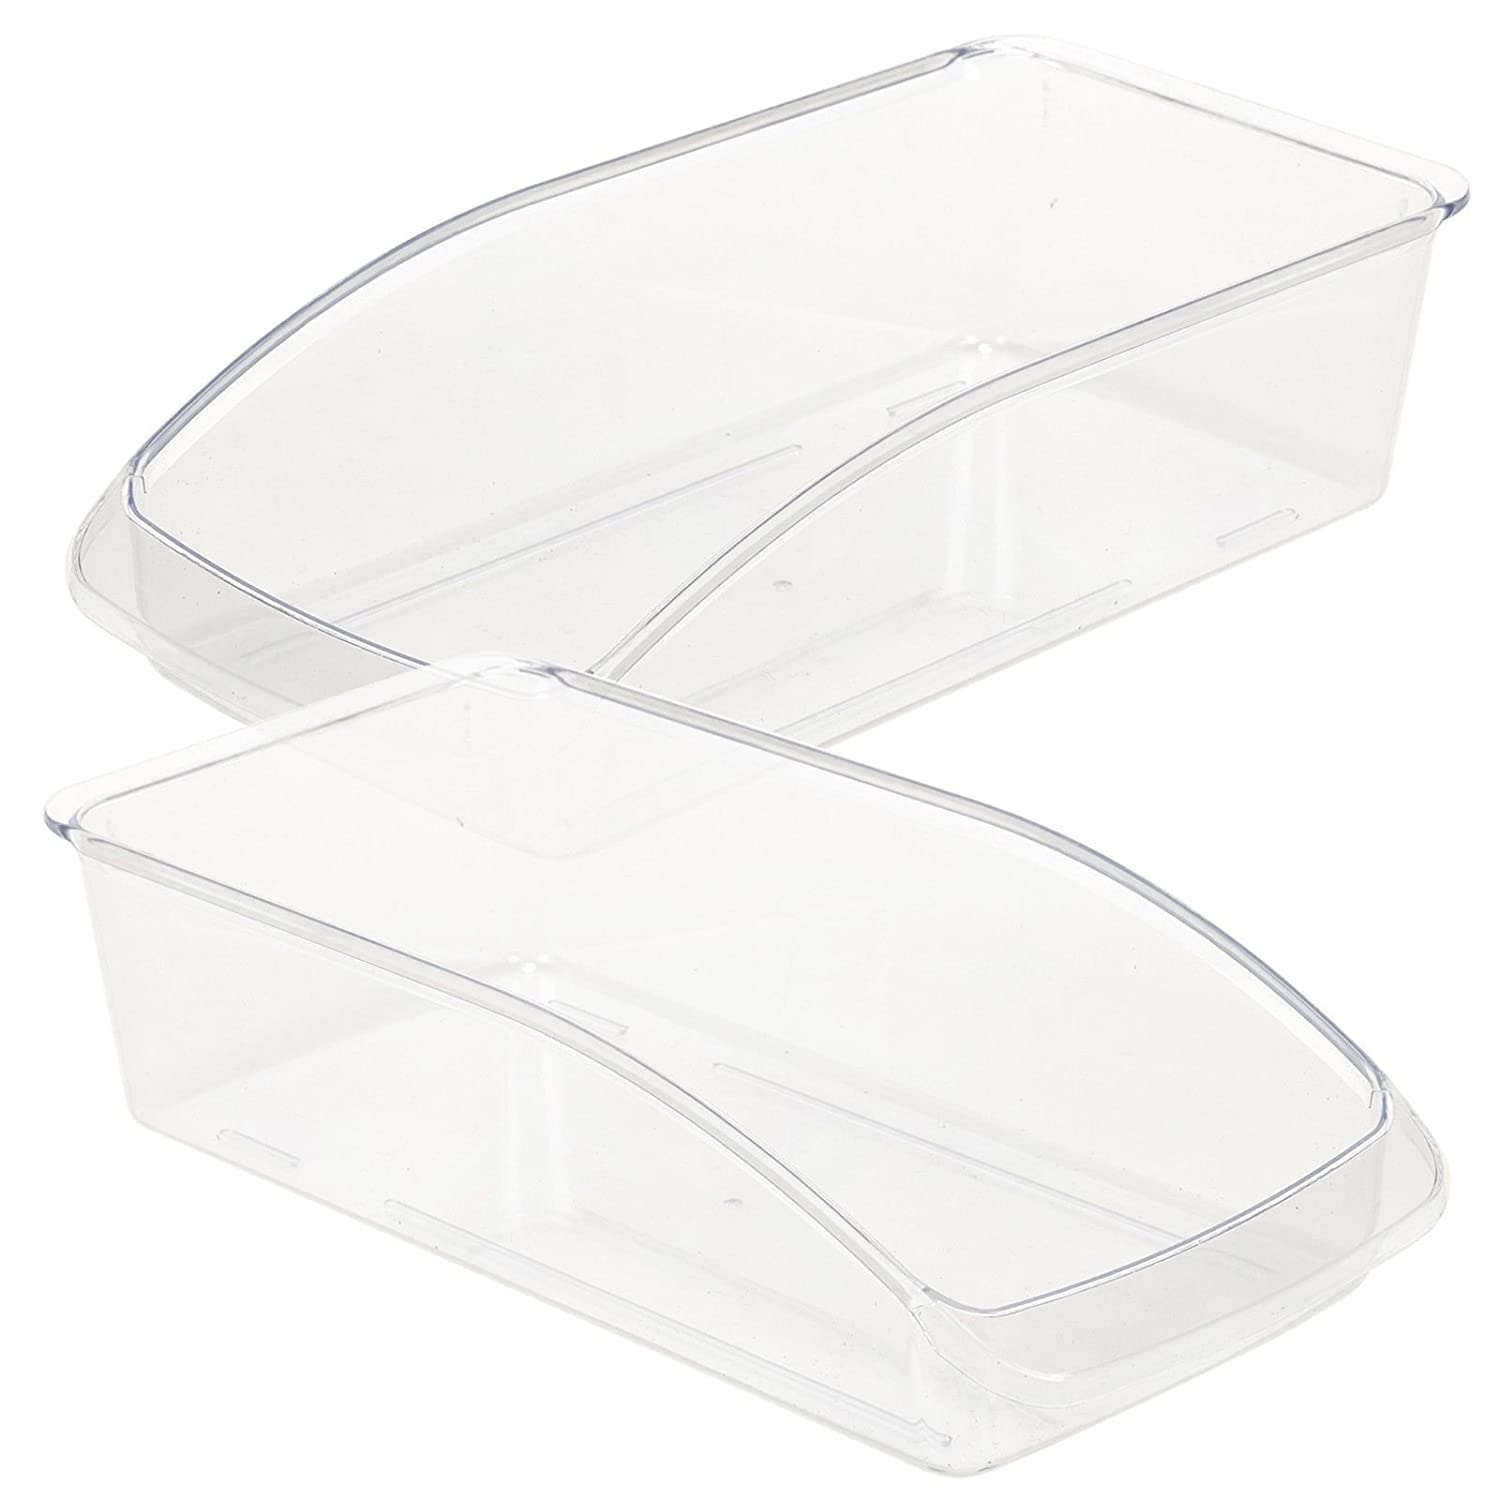 2x Medium Clear Plastic Fridge Storage Organiser EASYGIFT